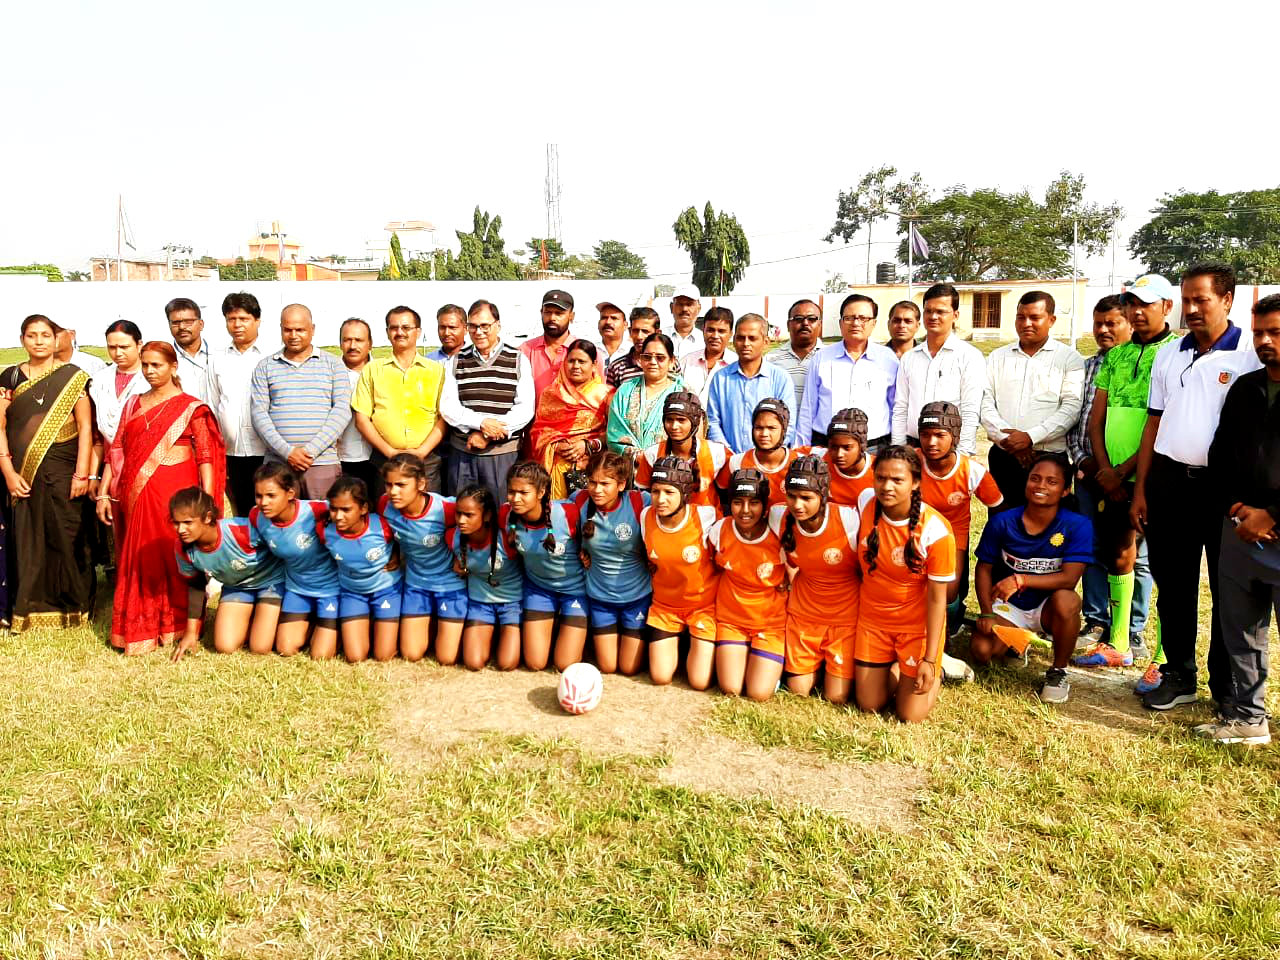 Dr.Madhepuri, Manju Devi and others with Rugby Team in a group photography at BN Mandal Stadium Madhepura.